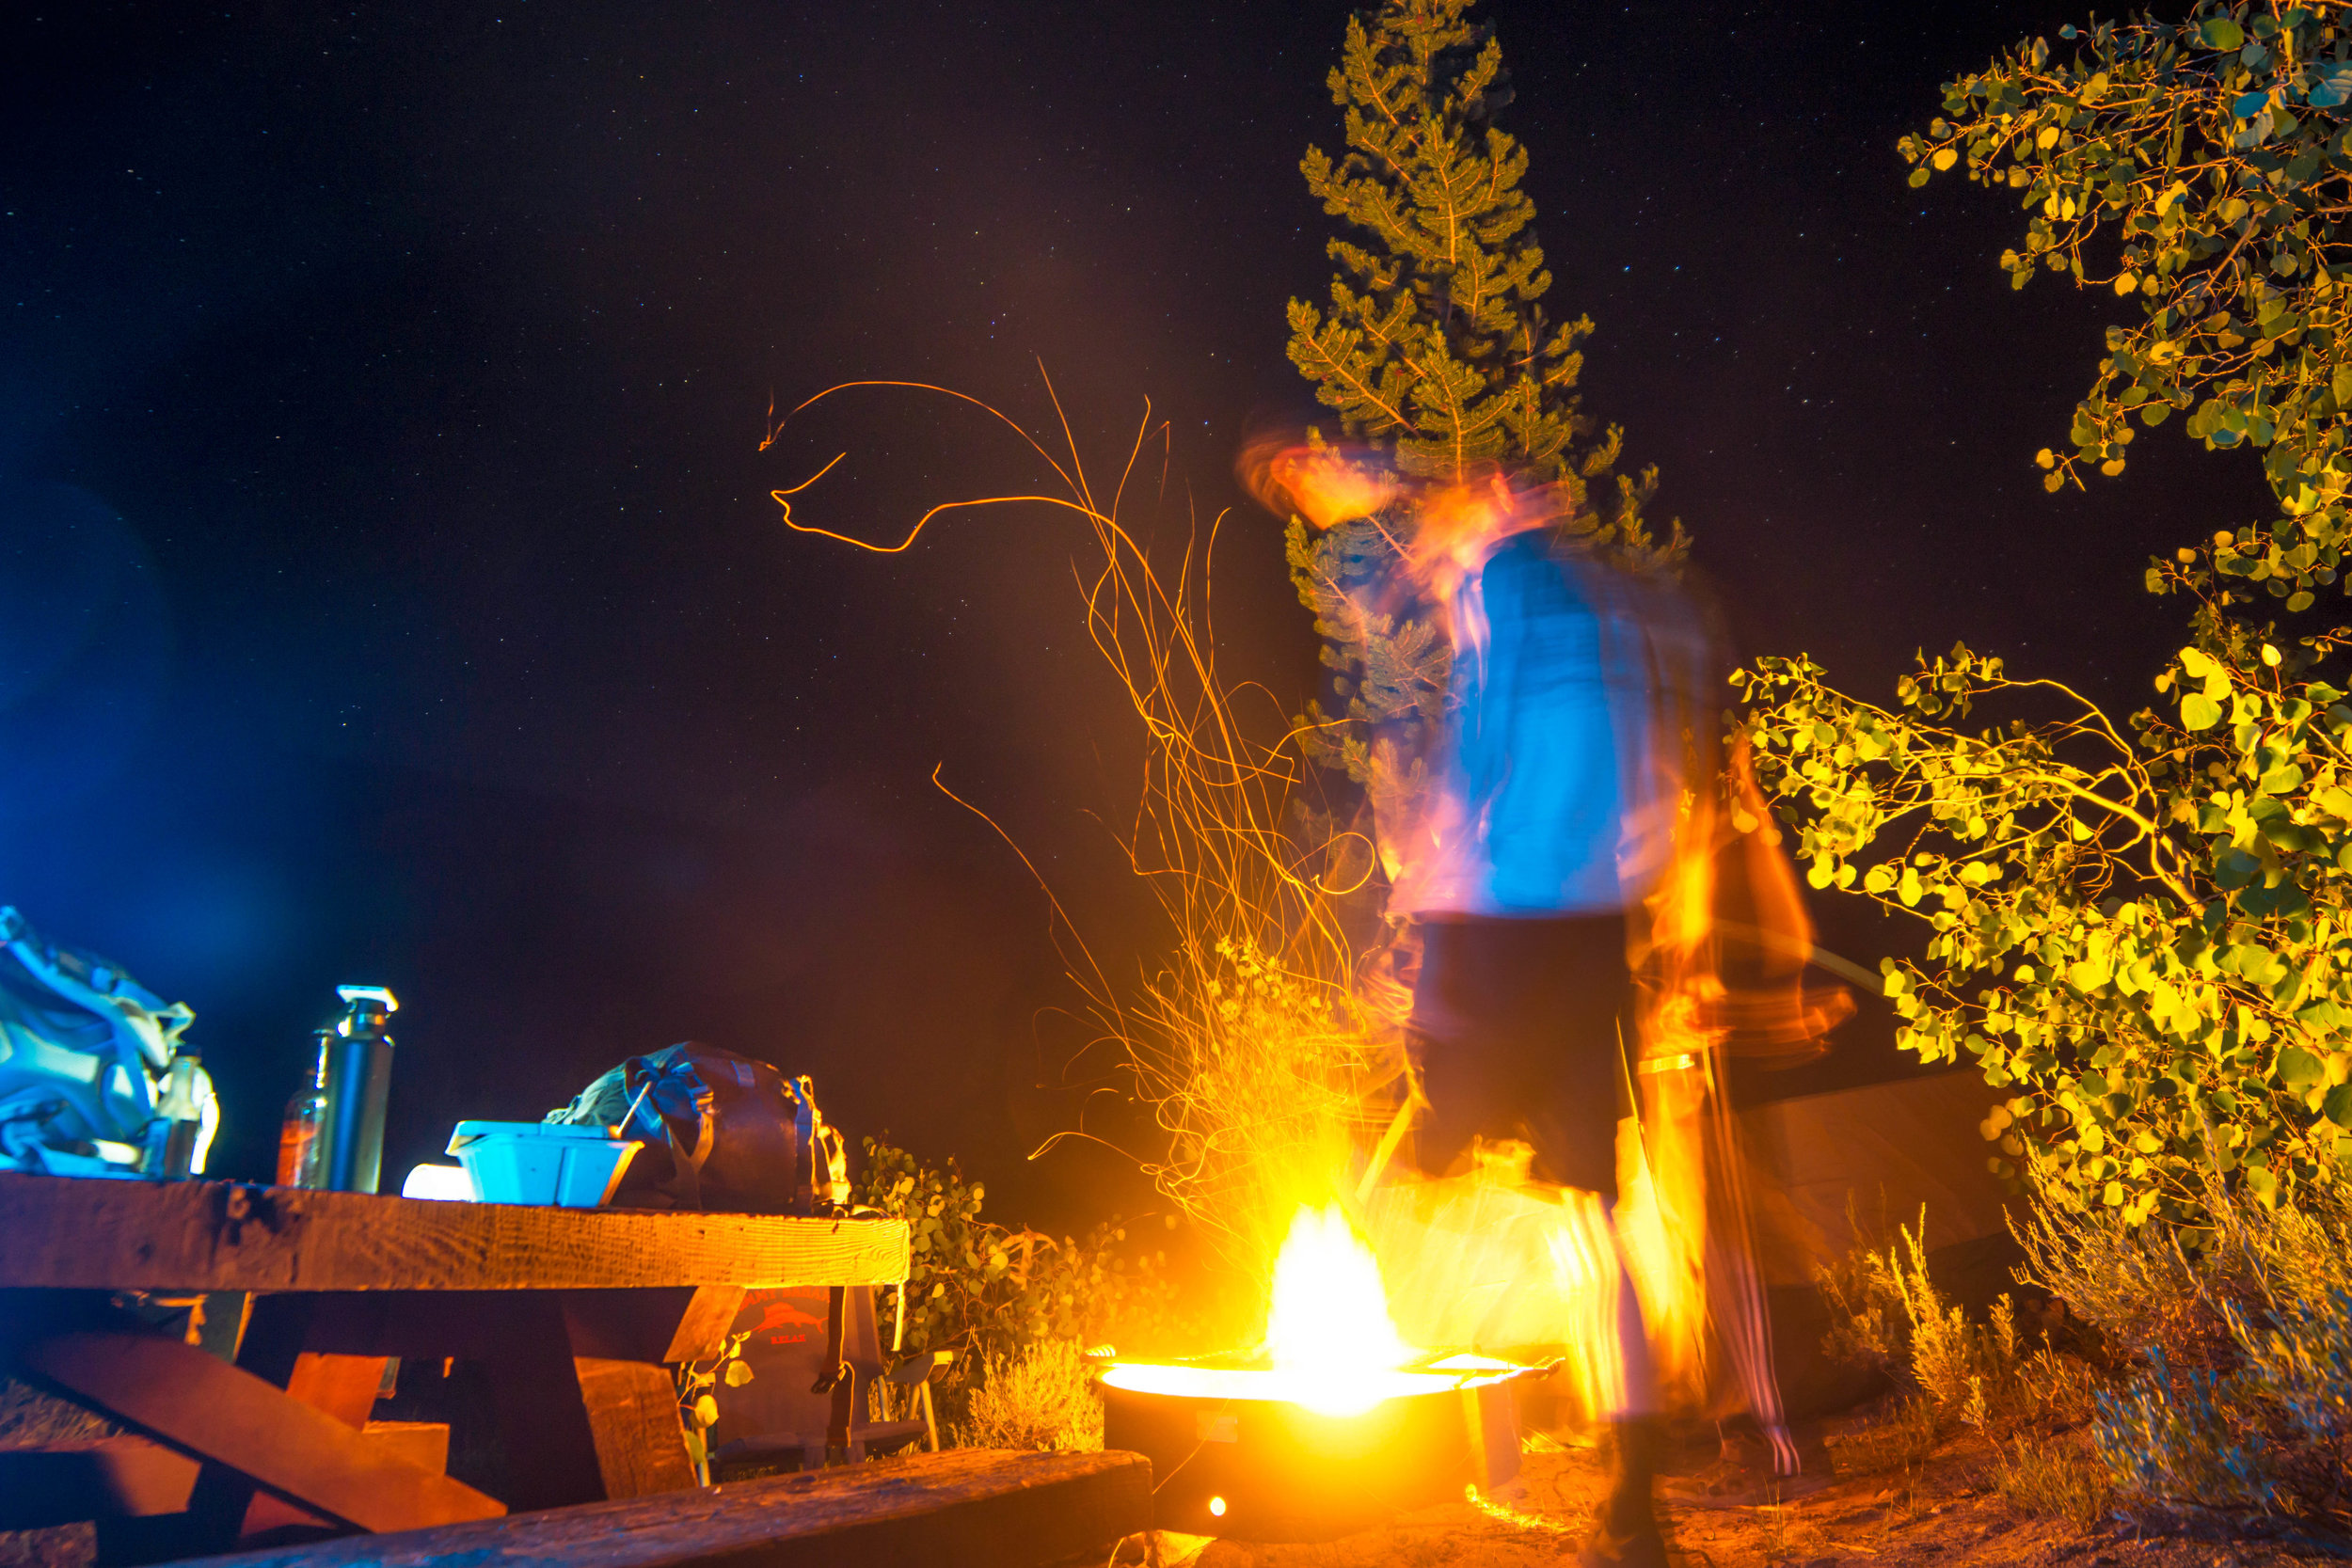 We arrived back at camp in the blackness of night, quickly sparking a fire that glowed in a brilliant orange, cooking our food & warming our bones.